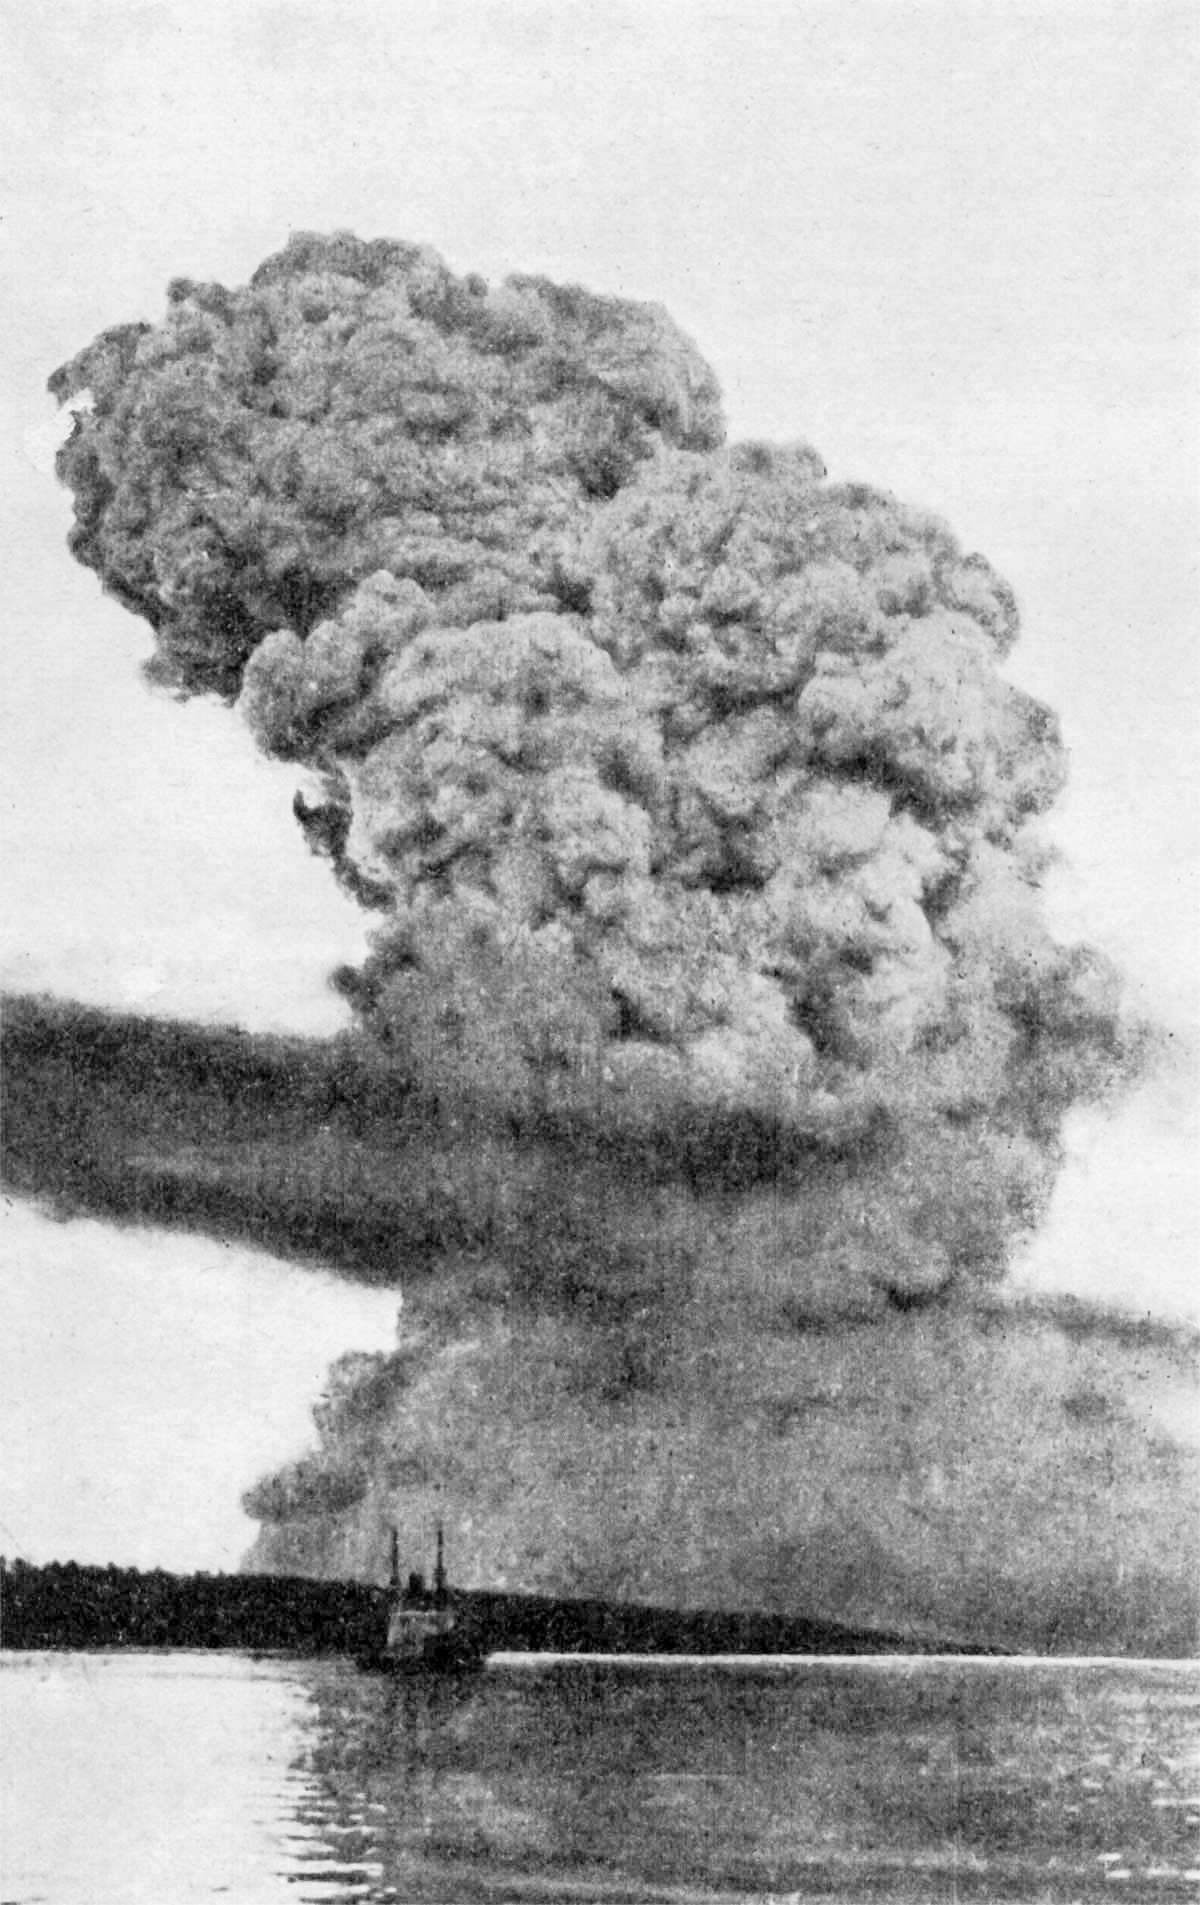 halifax explosion The halifax disaster how a maritime accident led to the largest human-caused explosion in the pre-nuclear era written by alan bellows • 8 minute read • 47 comments.